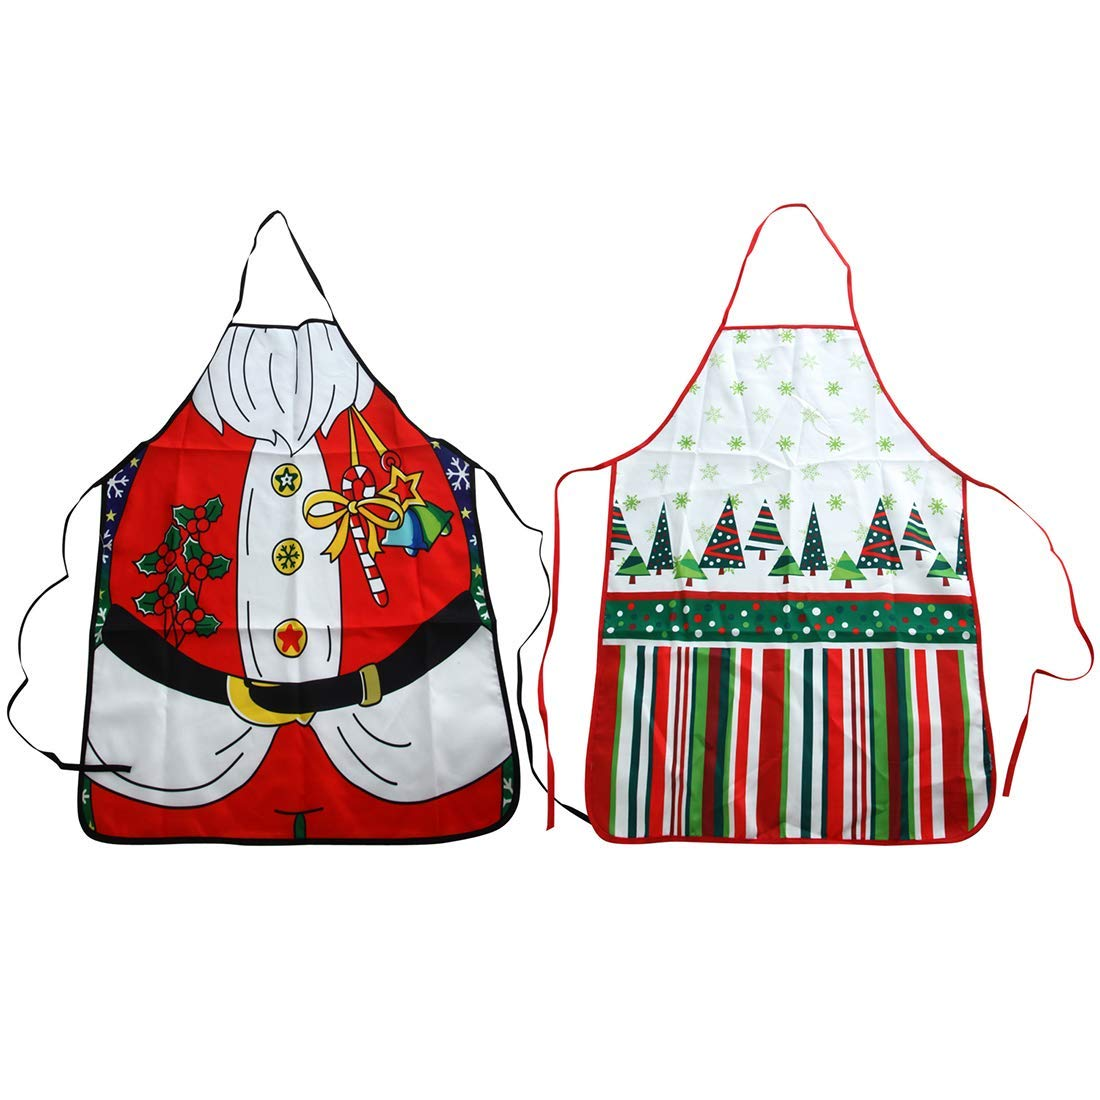 Shallylu 2Pcs Christmas Kitchen Apron, Men and Women Chef Apron Kitchen Dinner Christmas Tree Santa Apron for Christmas Xmas Holidays Cooking, Baking, Crafting Gift